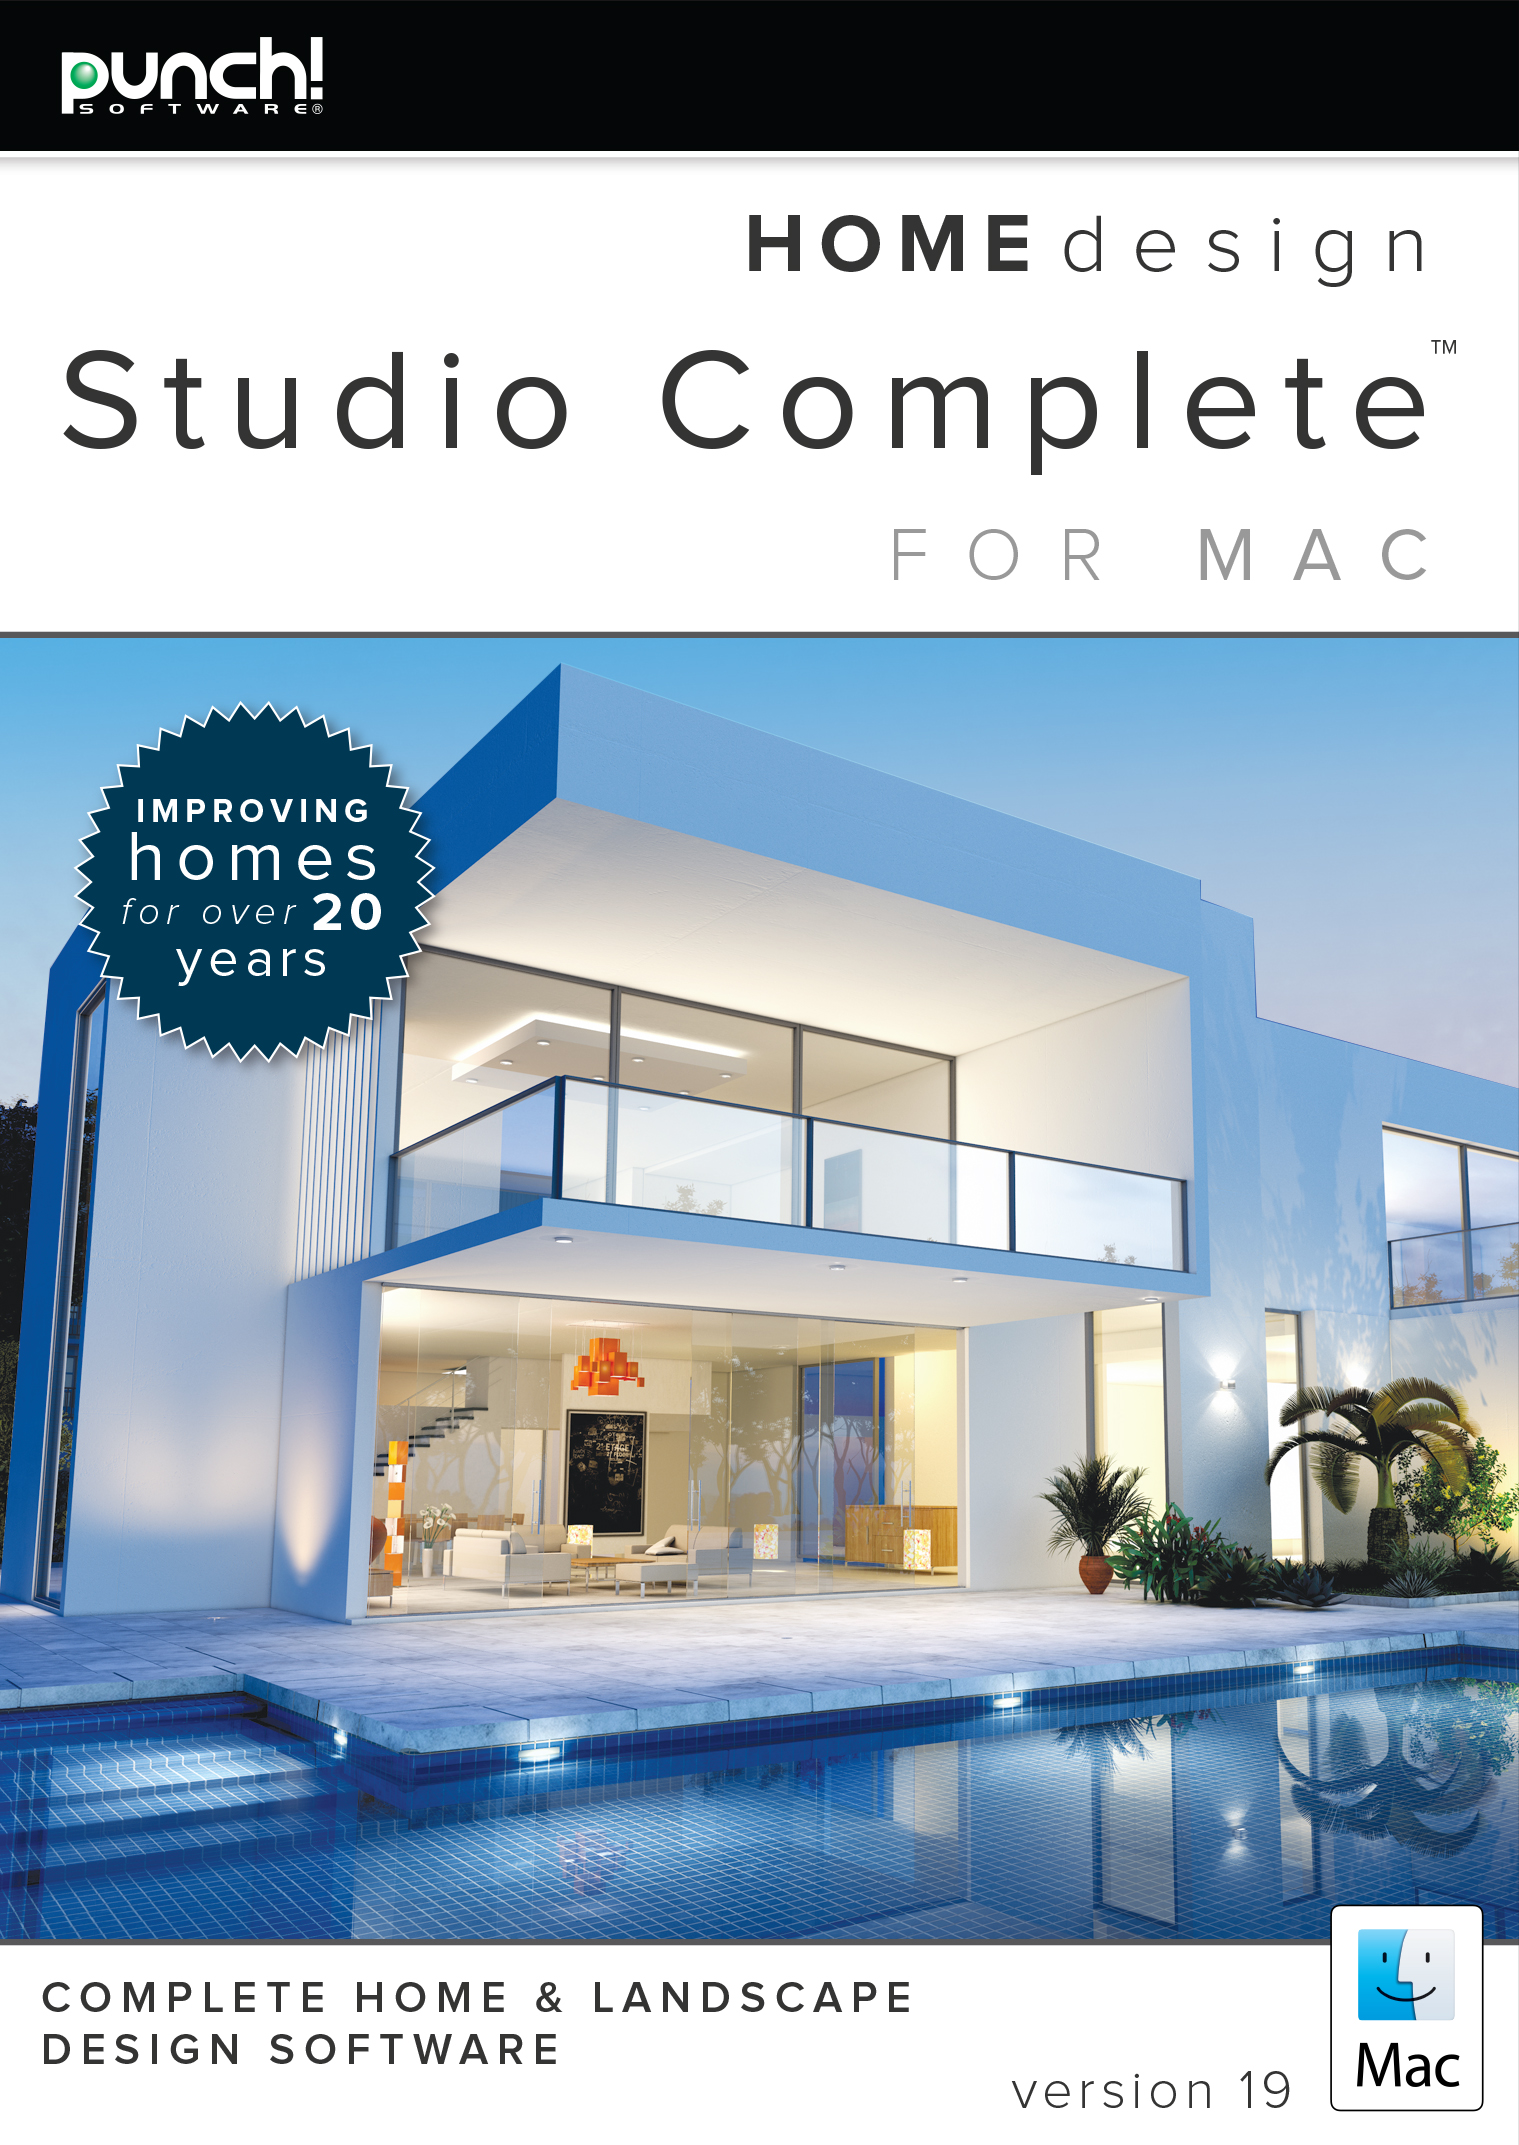 Punch! Home Design Studio Complete for Mac v19 (Punch Design Software)